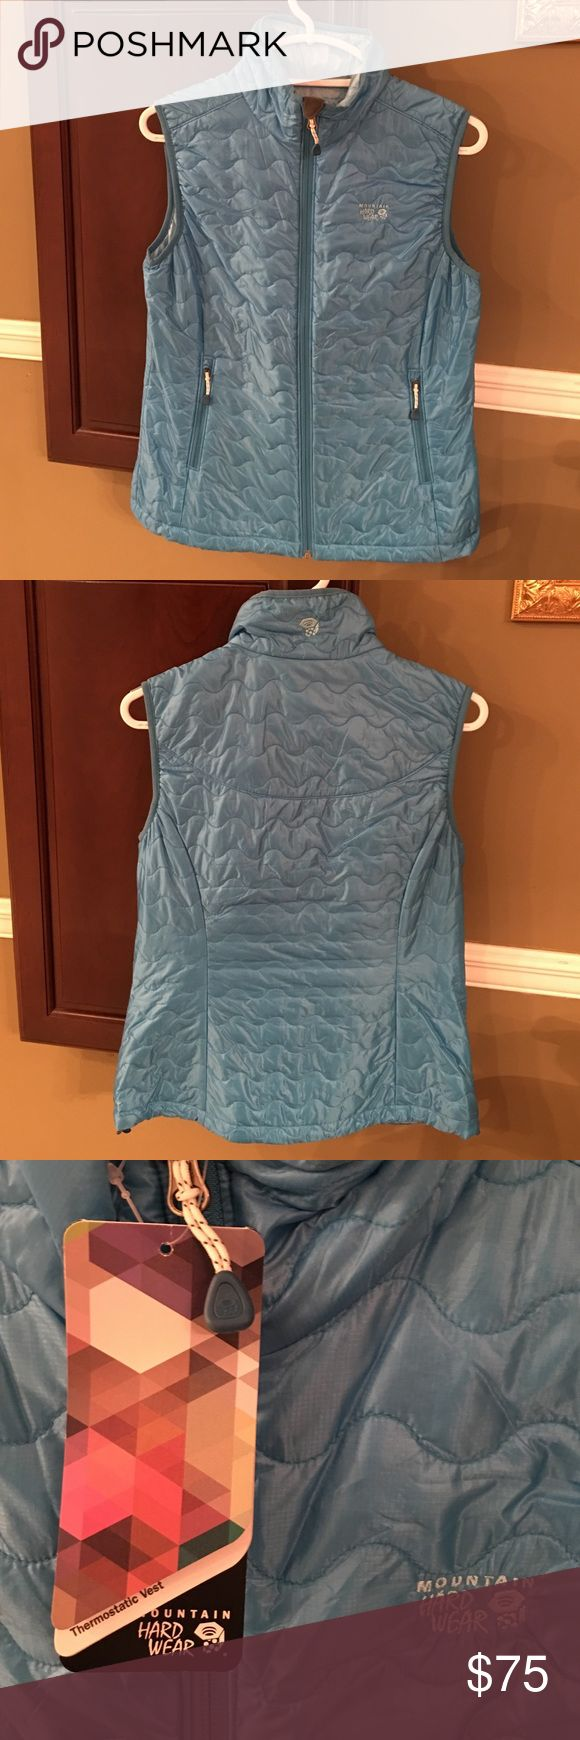 NWT Women's Mountain Hard Wear Blue Vest -Sz S Beautiful New Women's Mountain Hard Ware Thermostatic Vest in size Small. Orig. $130.  New with tags; no tears or stains. Mountain Hard Wear Jackets & Coats Vests